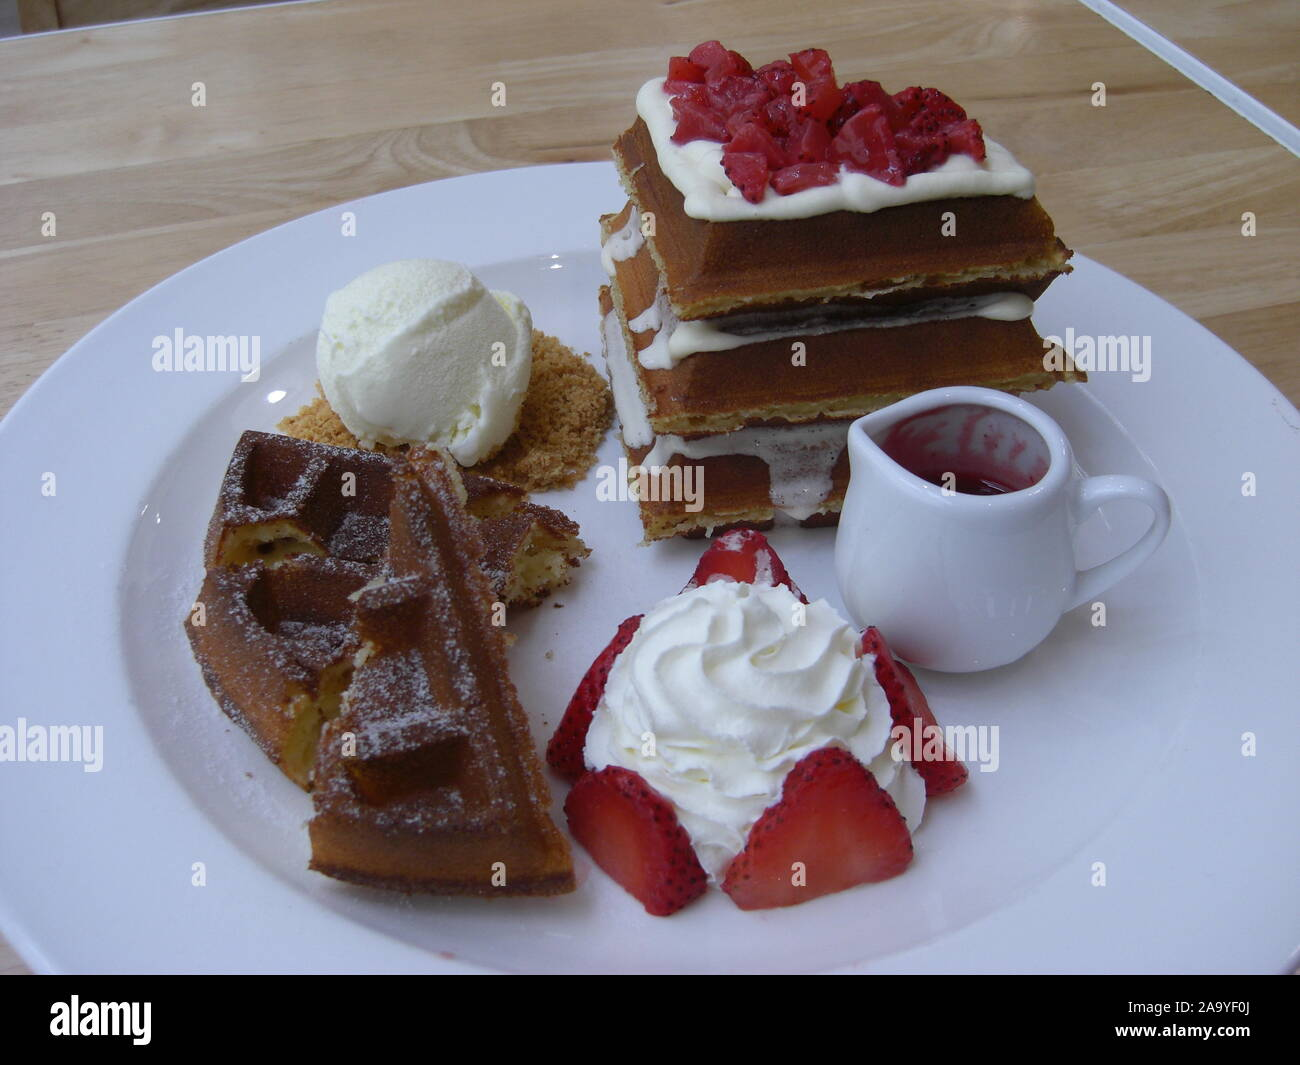 Chocolate Pancake With Ice Cream And Fresh Cream And Strawberries And Strawberry Sauce Stock Photo Alamy